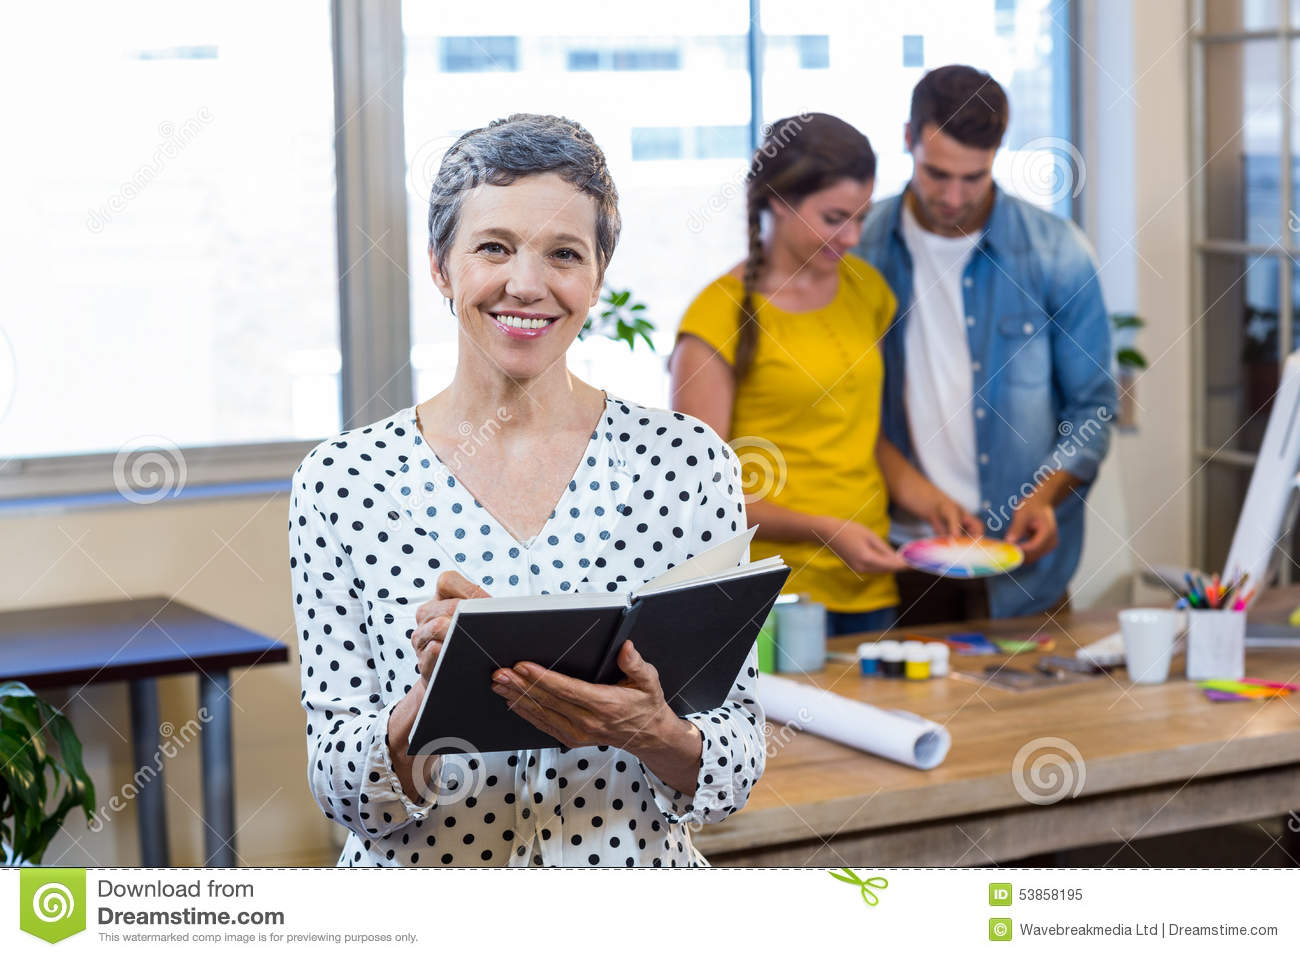 casual employement essay Part-time jobs are 35 hours a week or fewer, according to the bureau of labor statistics the primary reasons for obtaining such employment are because.